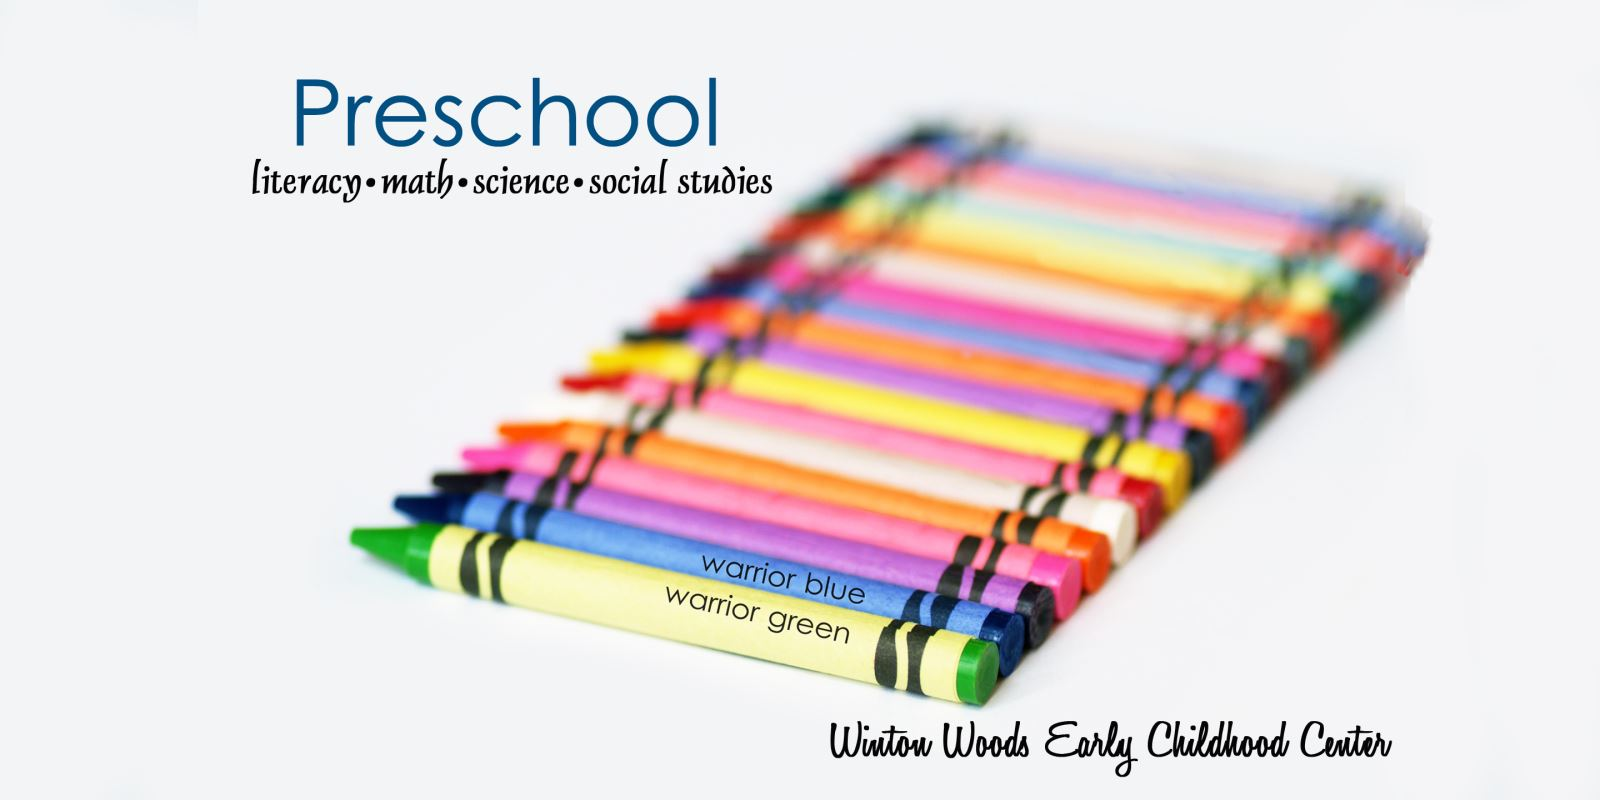 PICTURE OF CRAYONS FOR PRESCHOOL MARKETING